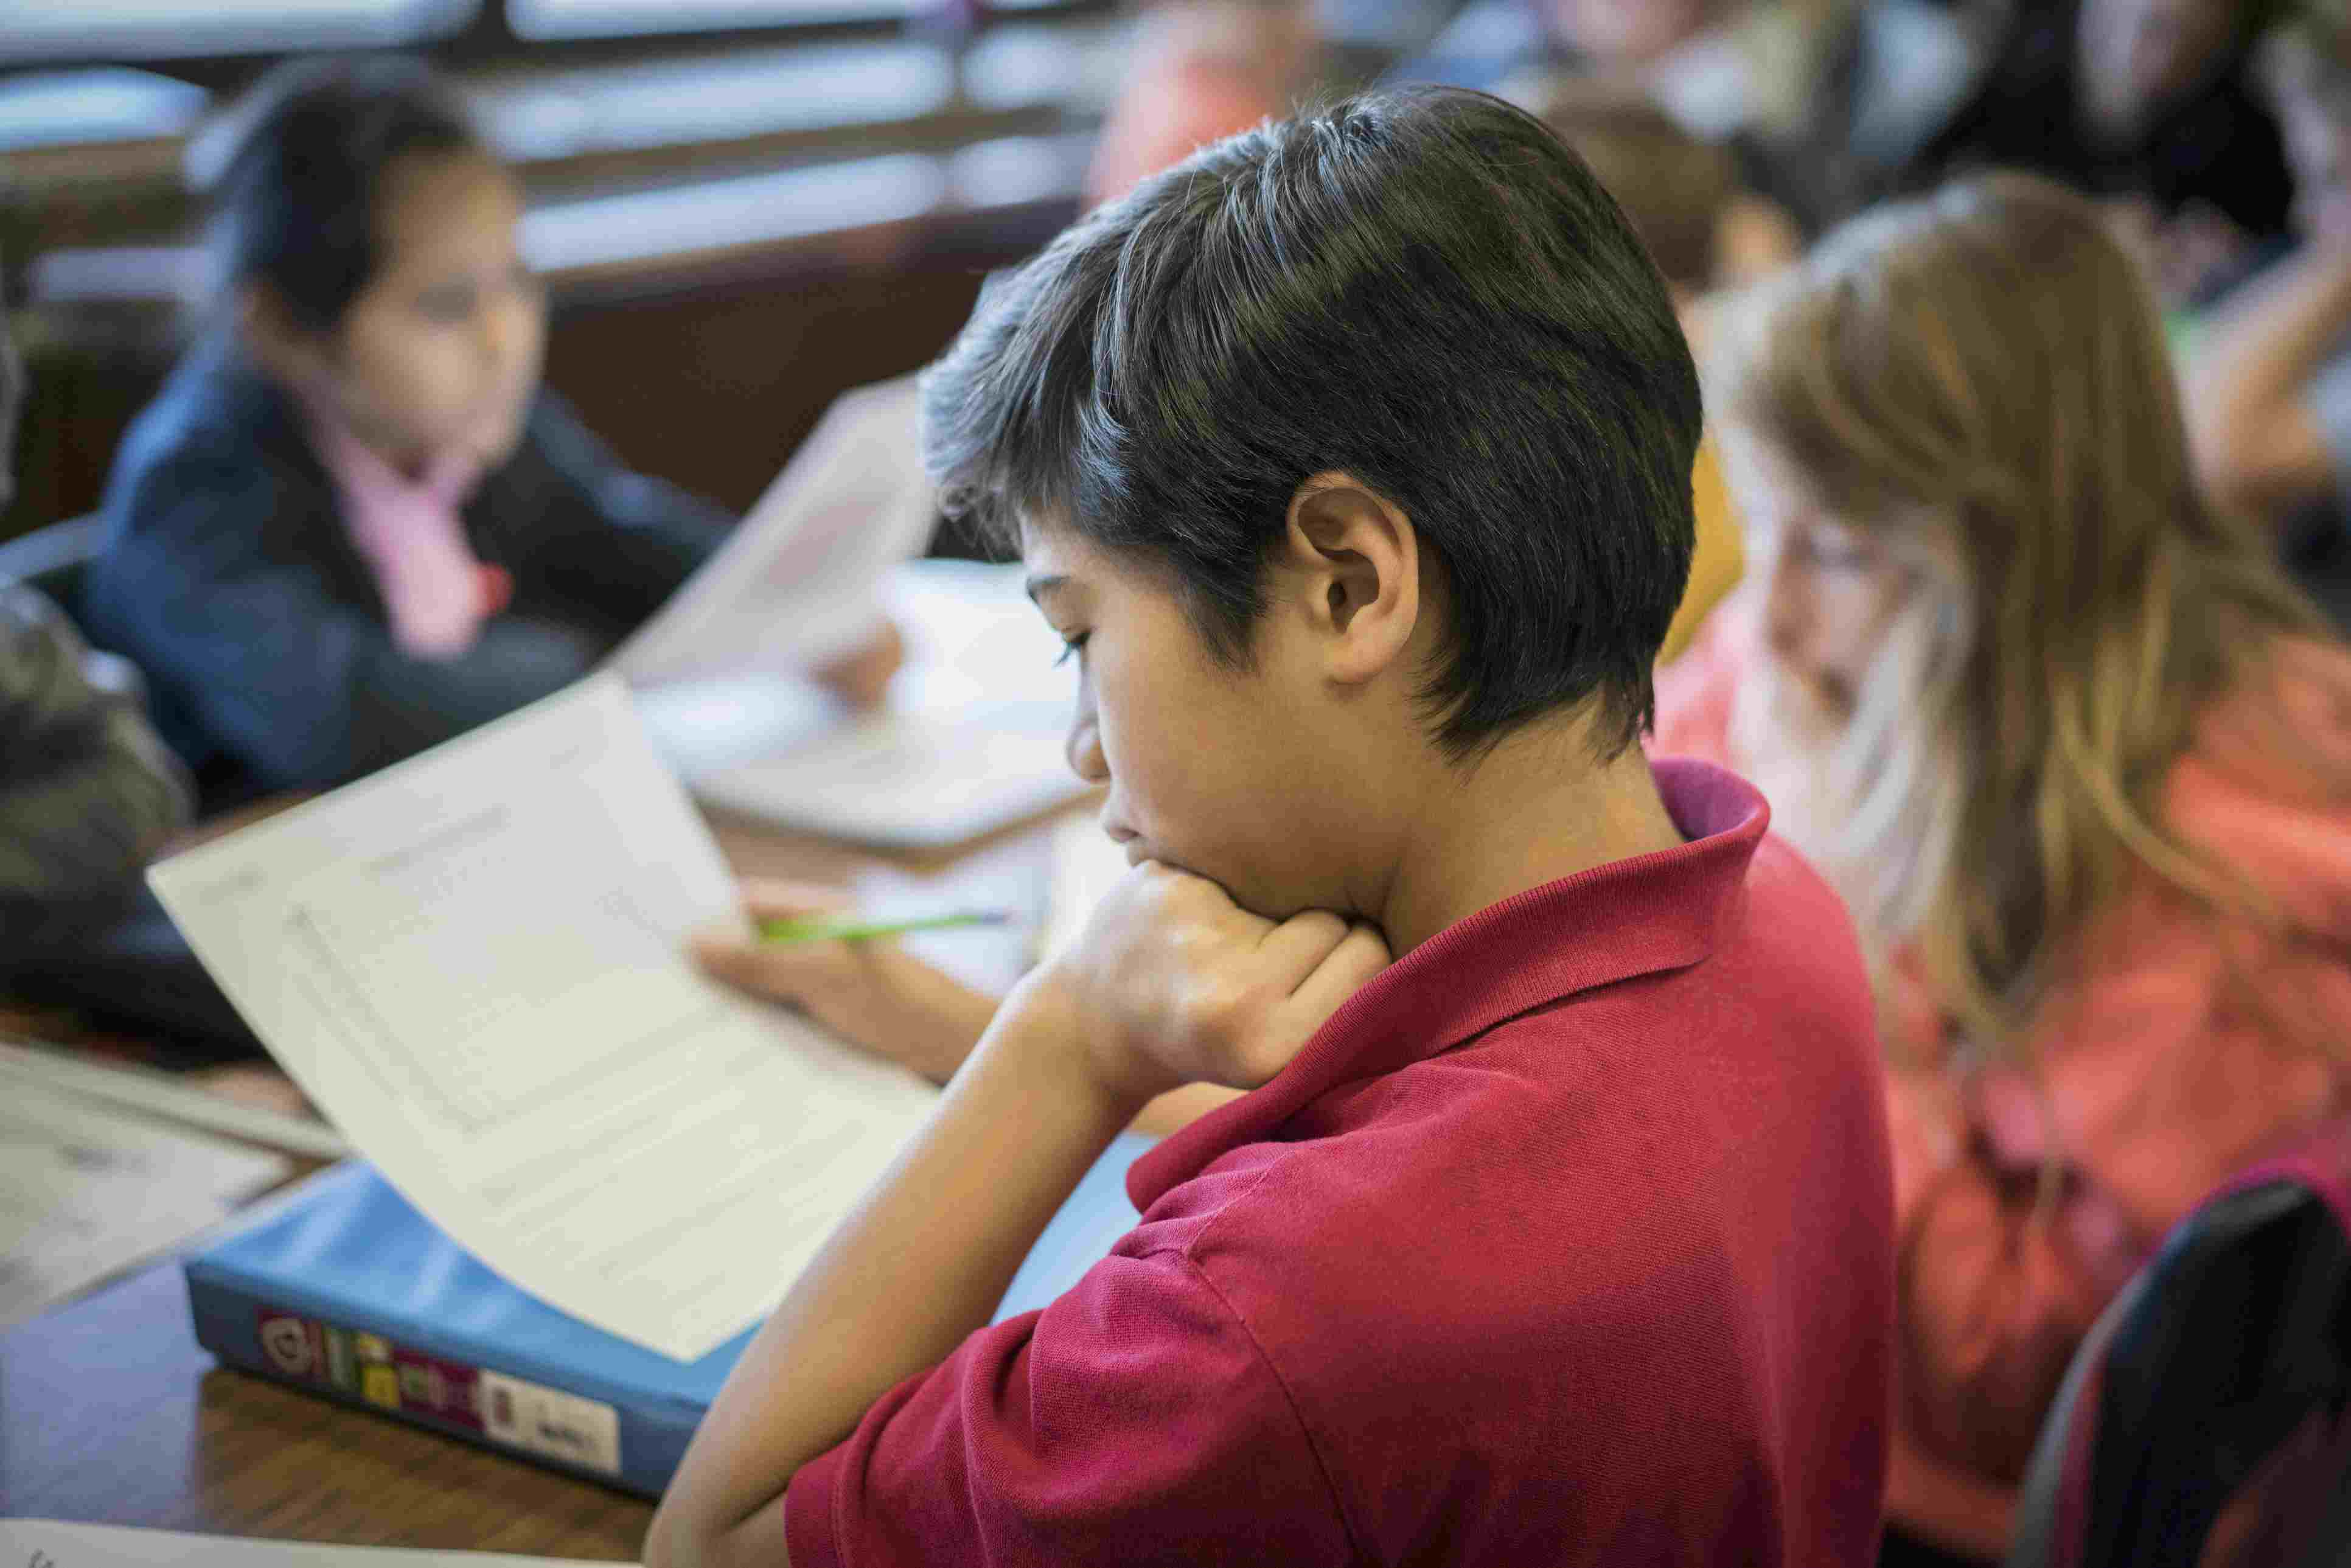 Student reading paper at desk in classroom